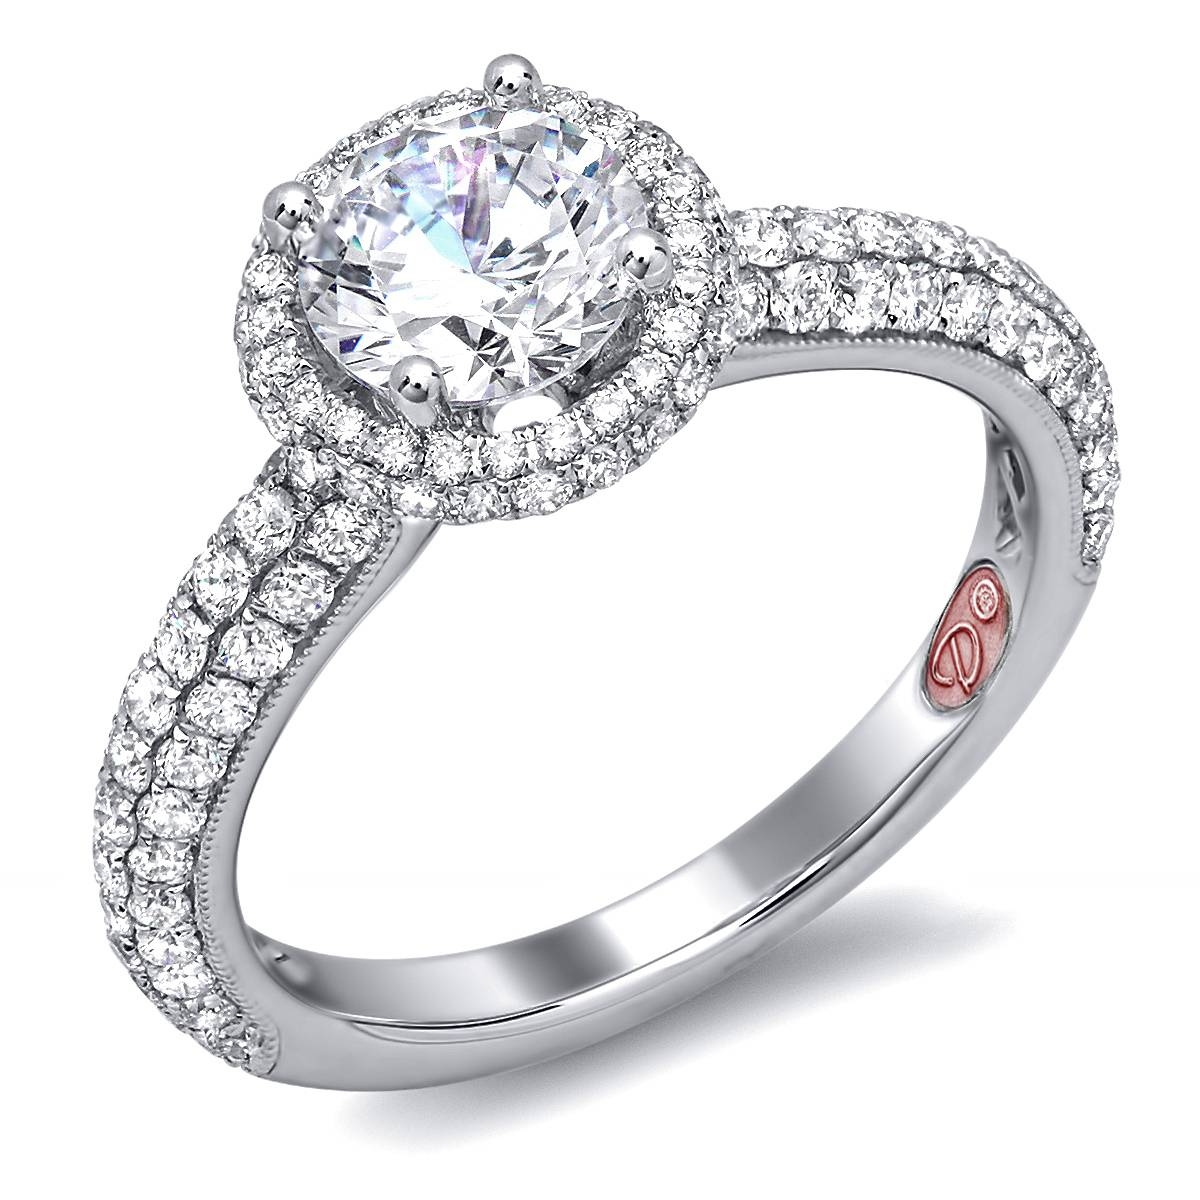 Round | Demarco Bridal Jewelry Official Blog Intended For Wedding Rings With Diamonds All The Way Around (View 14 of 15)